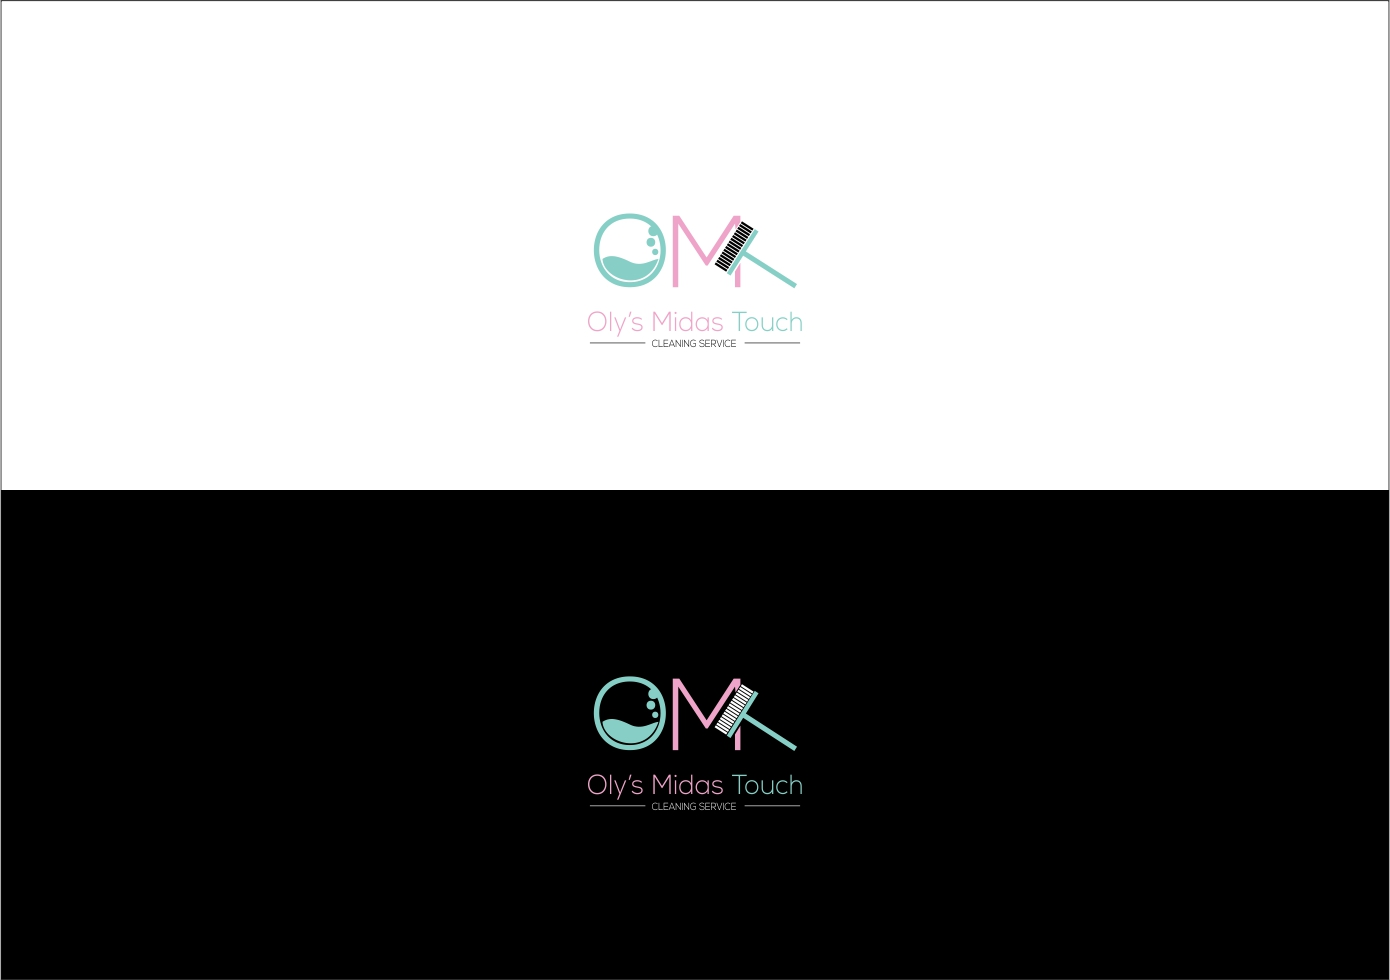 Elegant Playful Cleaning Service Logo Design For Oly S Midas Touch By Opung Design 22416759